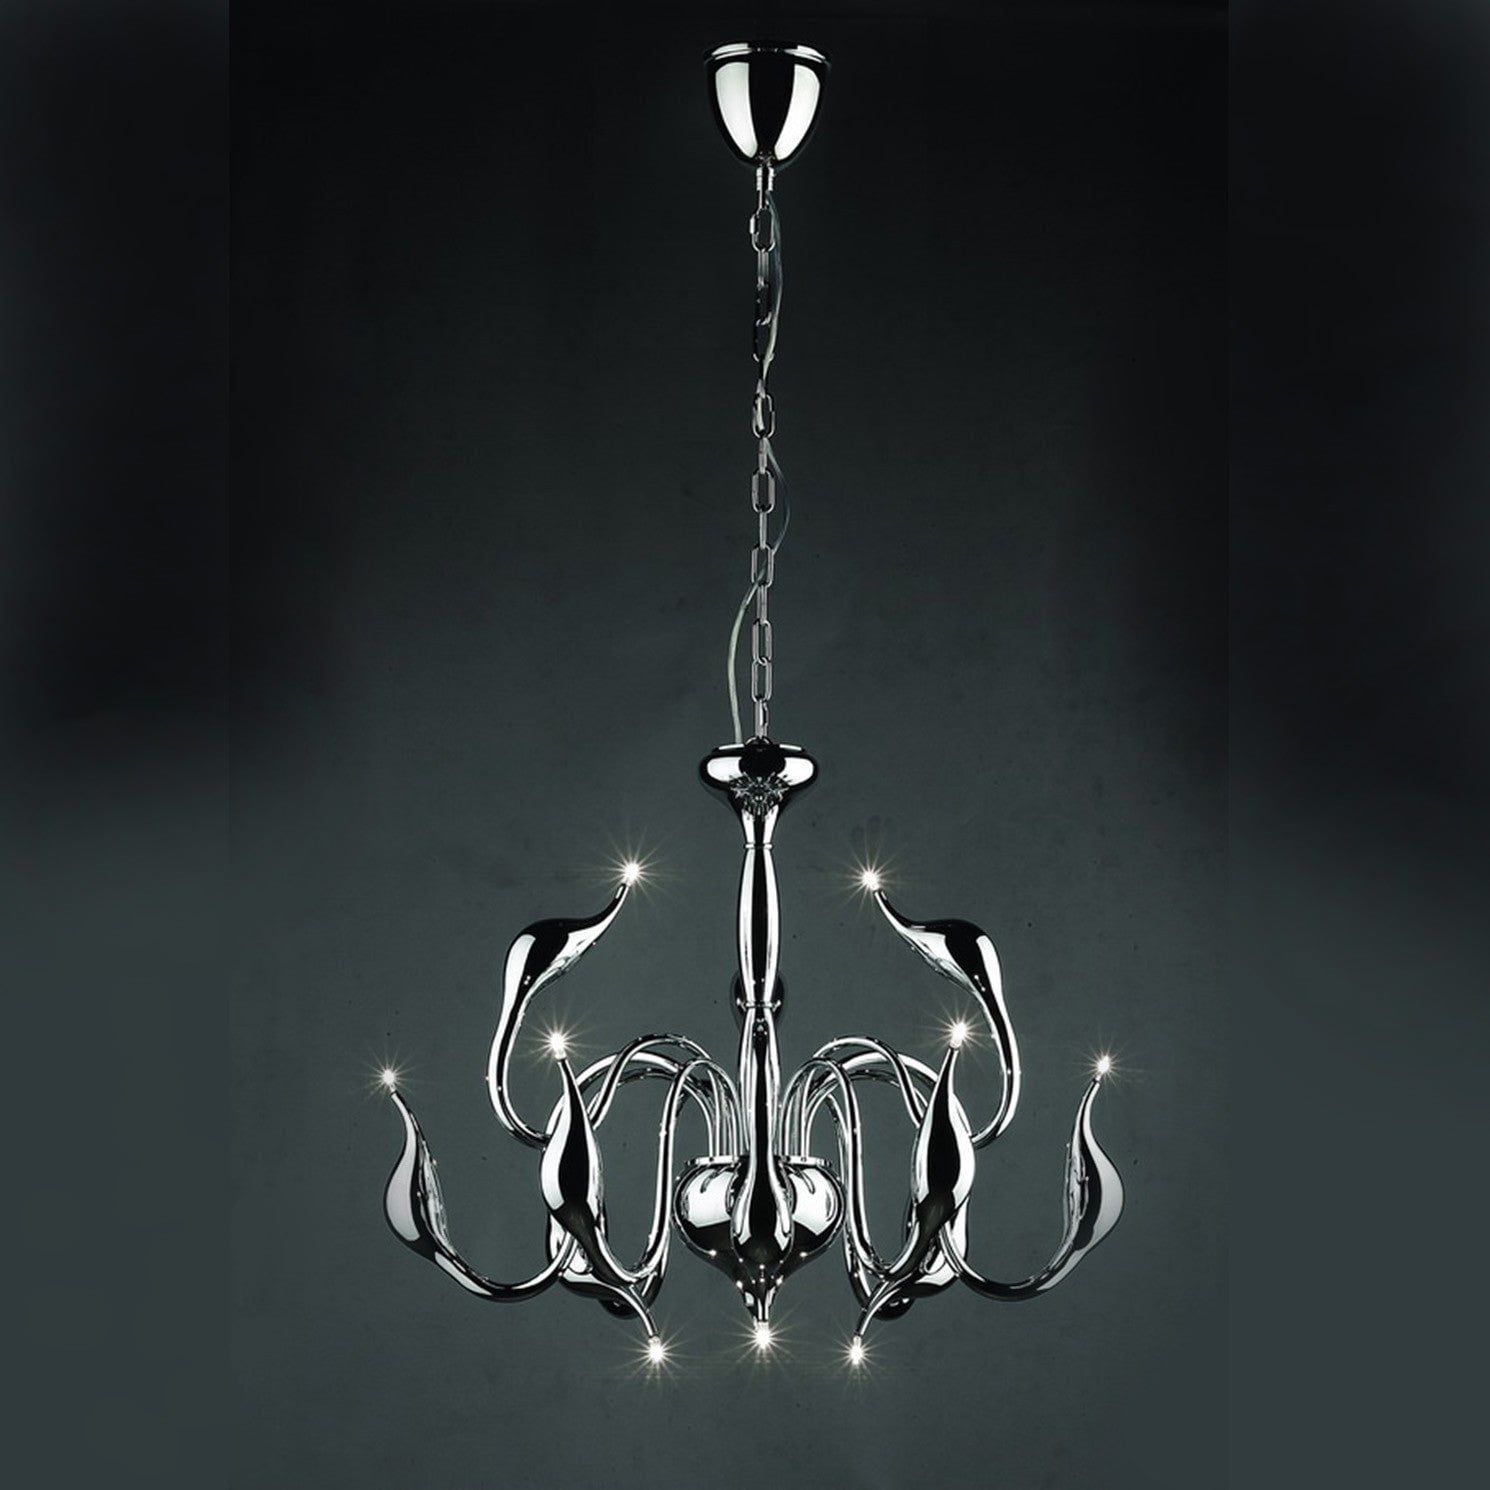 Illuminati swan 12 light chrome pendant chandelier chandelier shack illuminati swan 12 light chrome pendant chandelier md8098 12a ch aloadofball Images